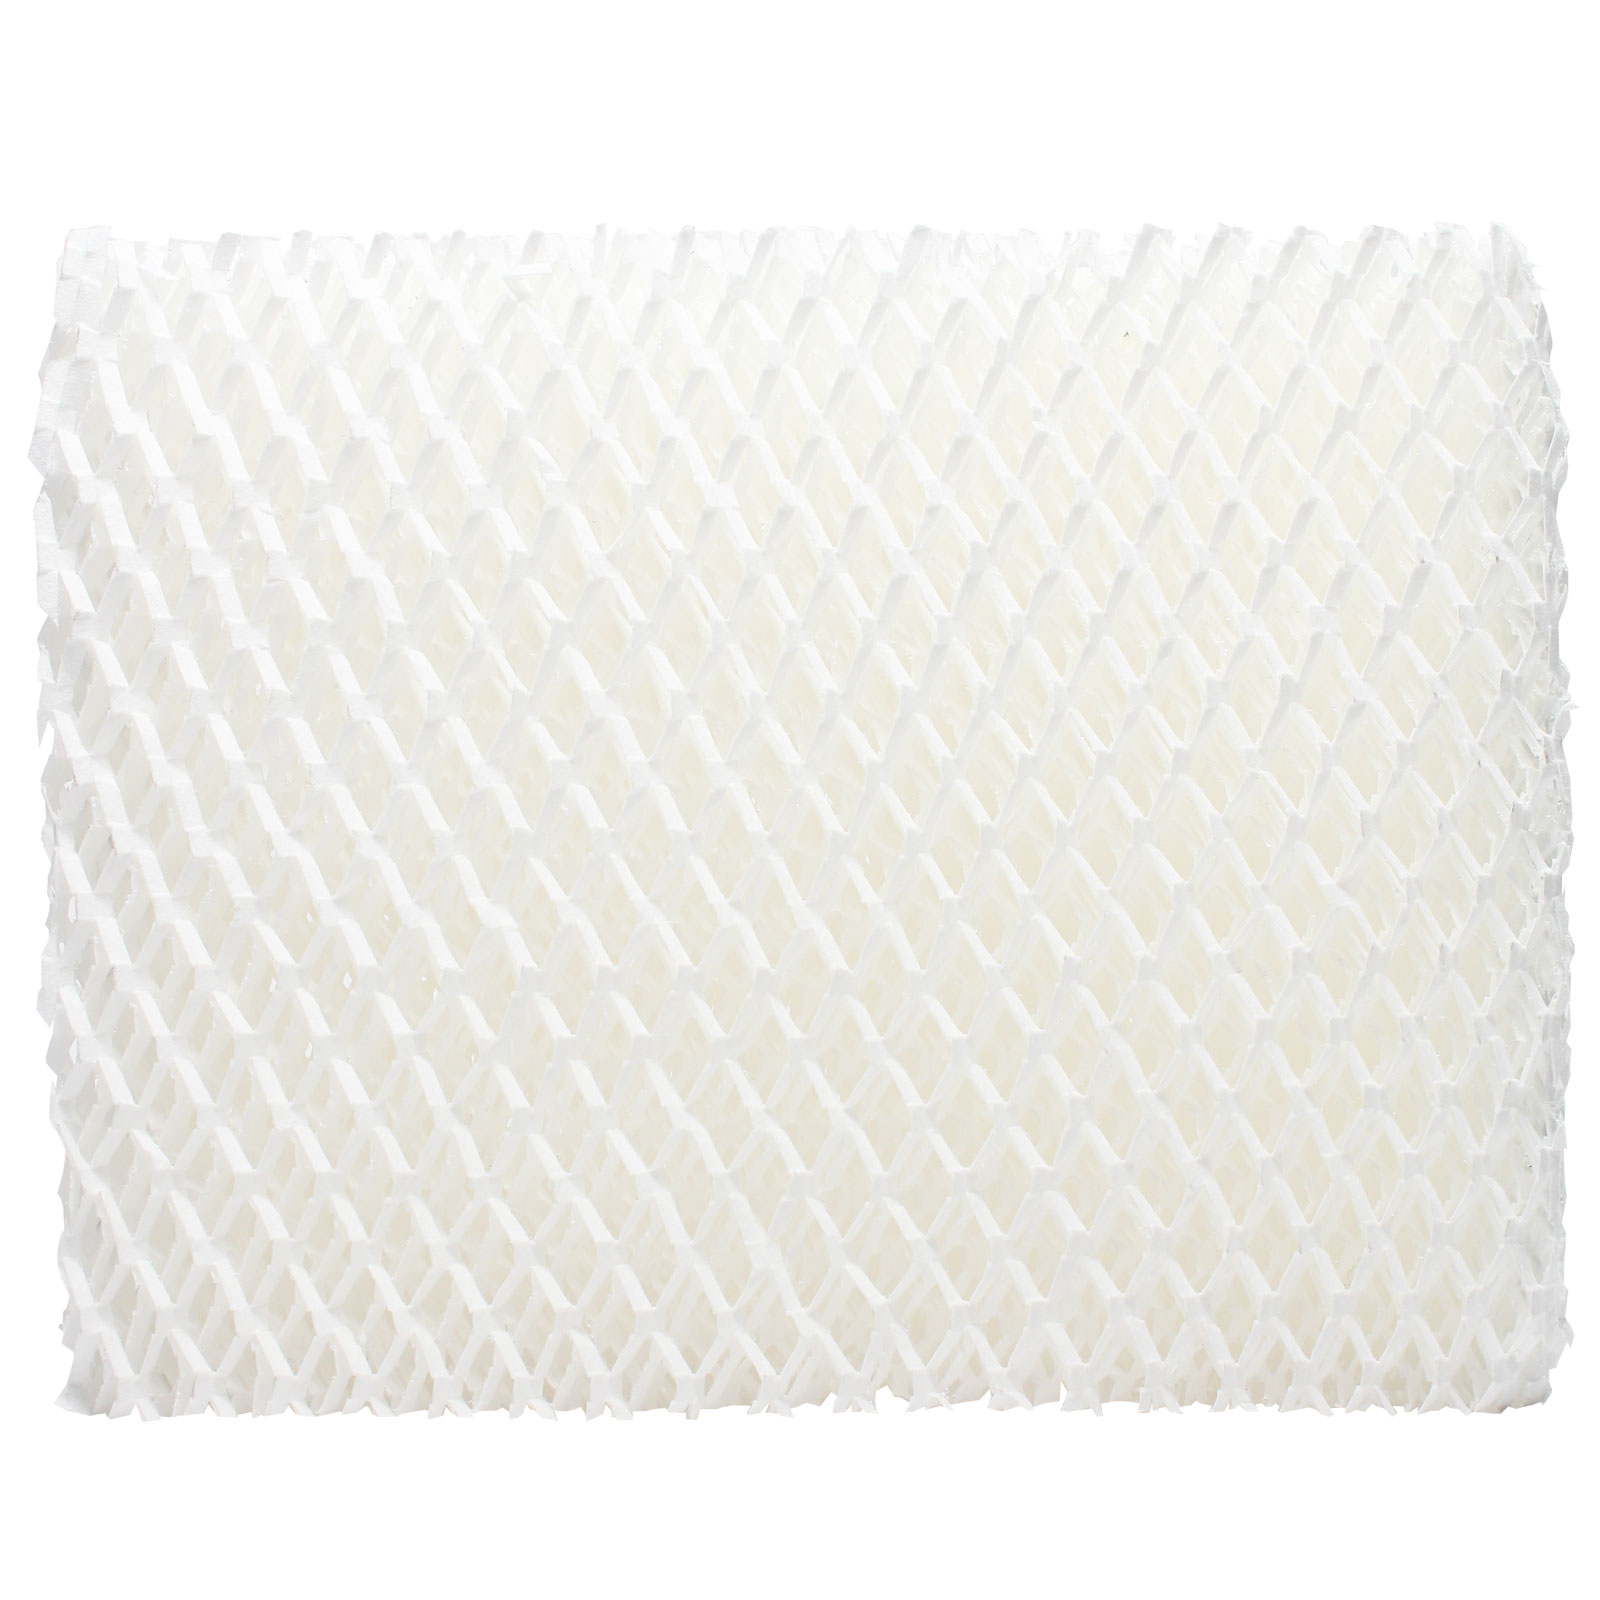 8-Pack Replacement Sears / Kenmore 144150 Humidifier Filter - Compatible Sears / Kenmore 14911 Air Filter - image 3 of 4